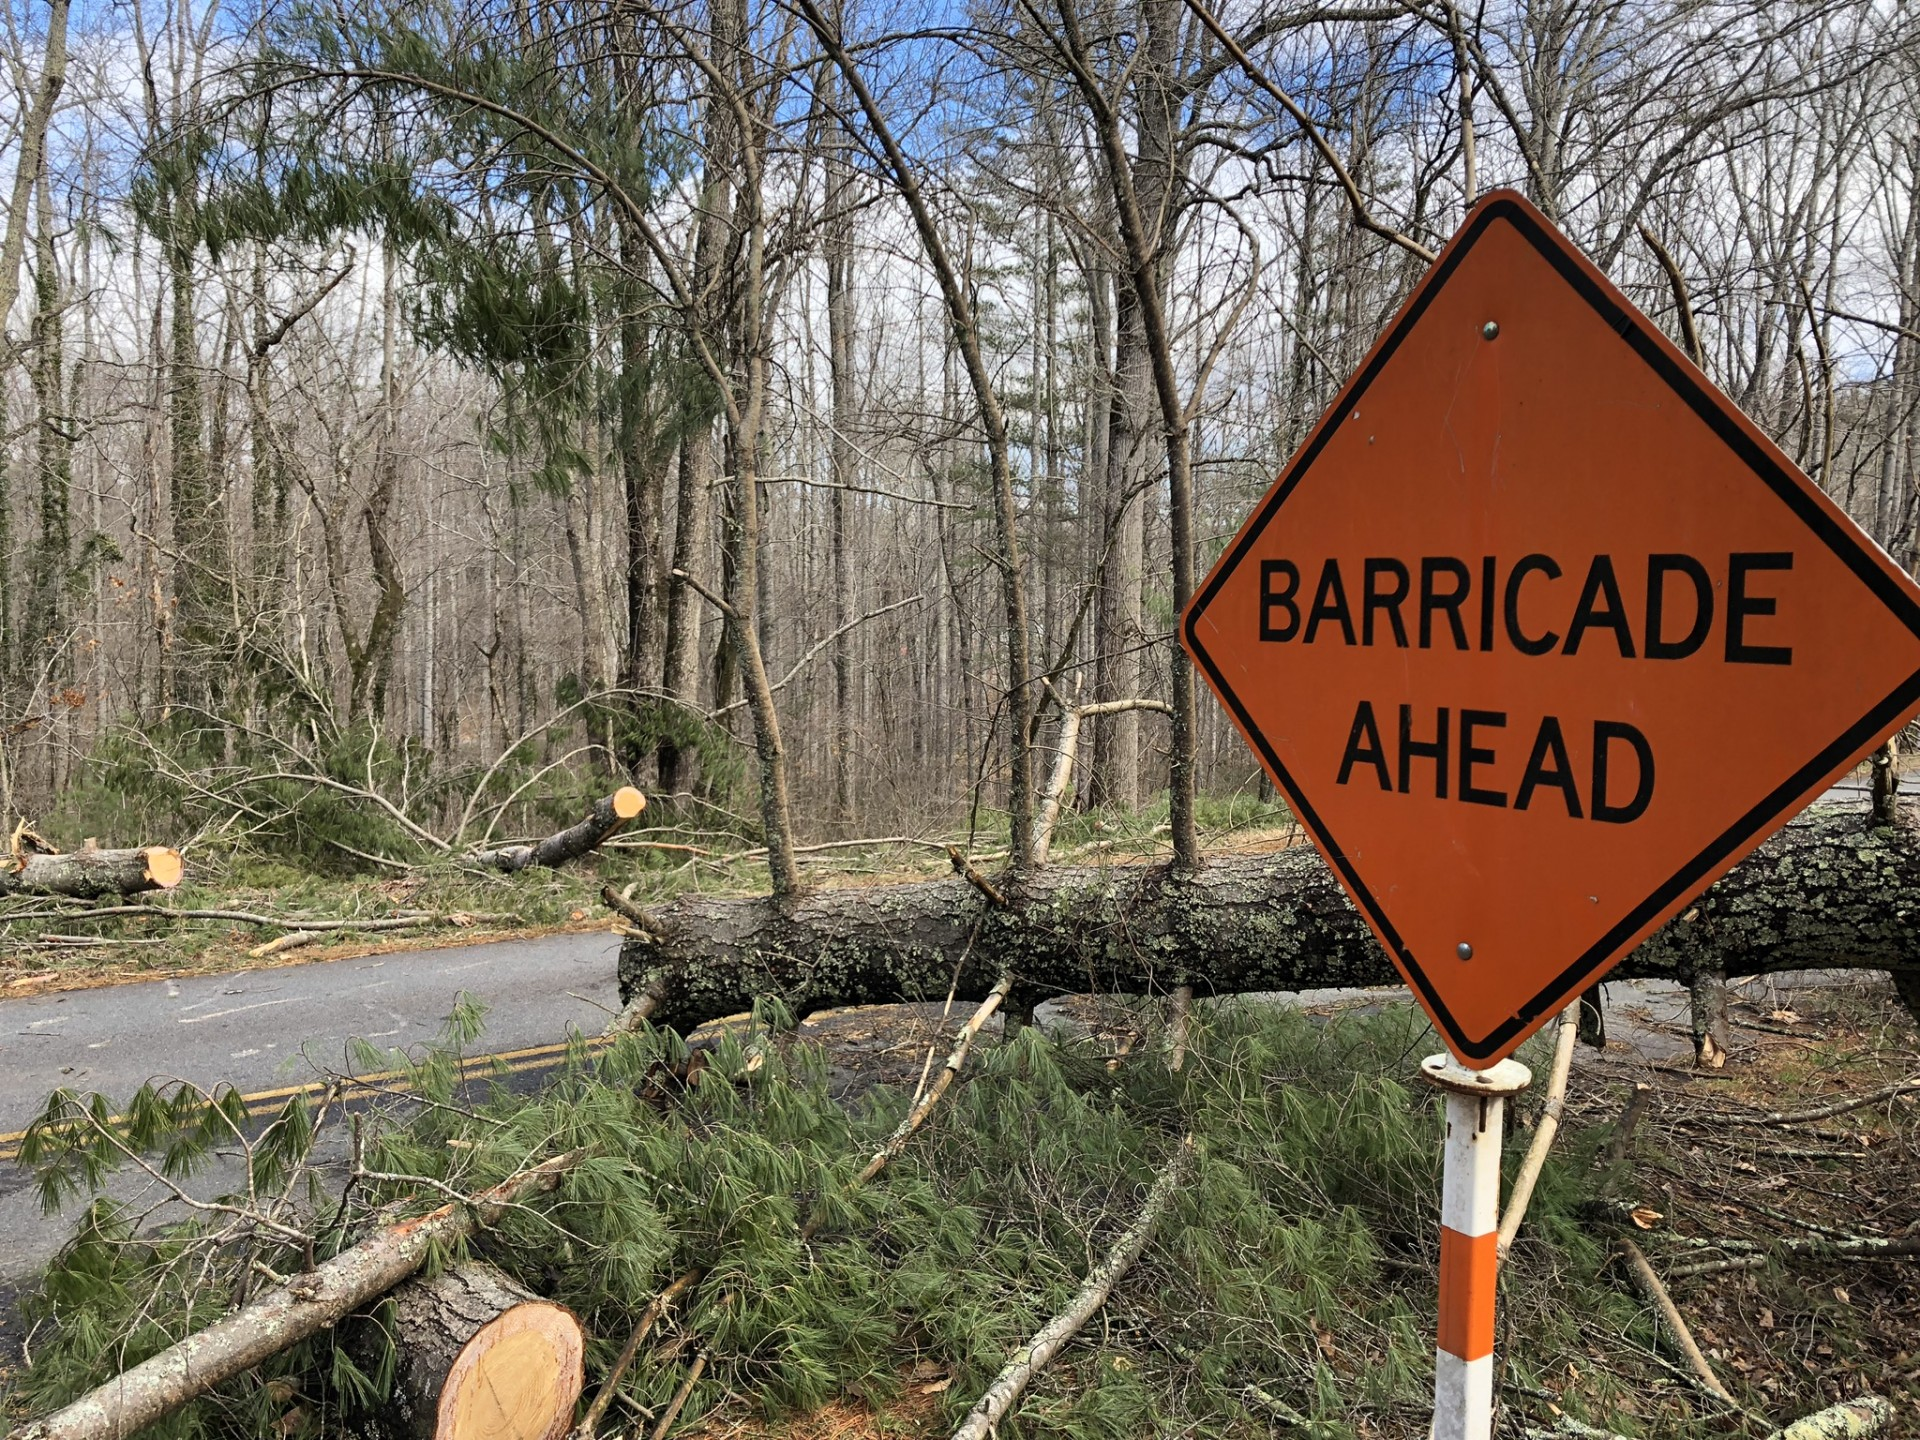 A downed tree blocks one lane of the Blue Ridge Parkway just north of the Folk Art Center in Asheville.